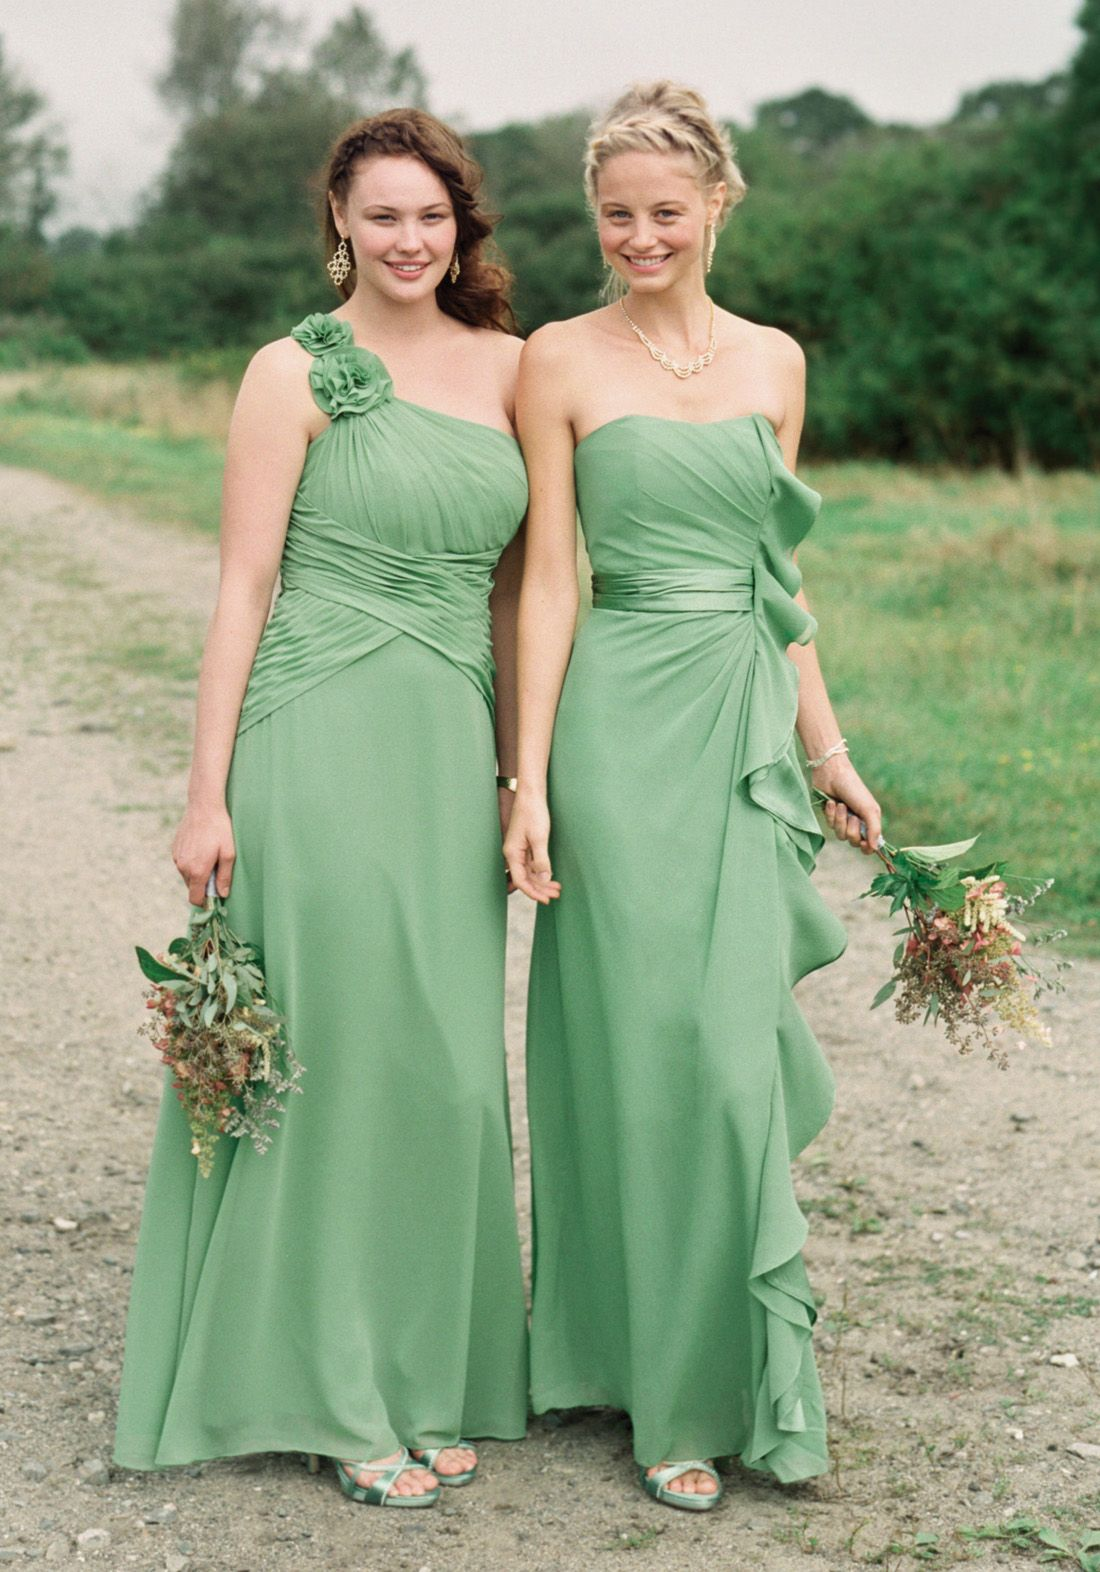 Check out styles f14010 and f14336 in clover as well as all of what about using the clover color instead of gem is it too light for a november wedding ombrellifo Images